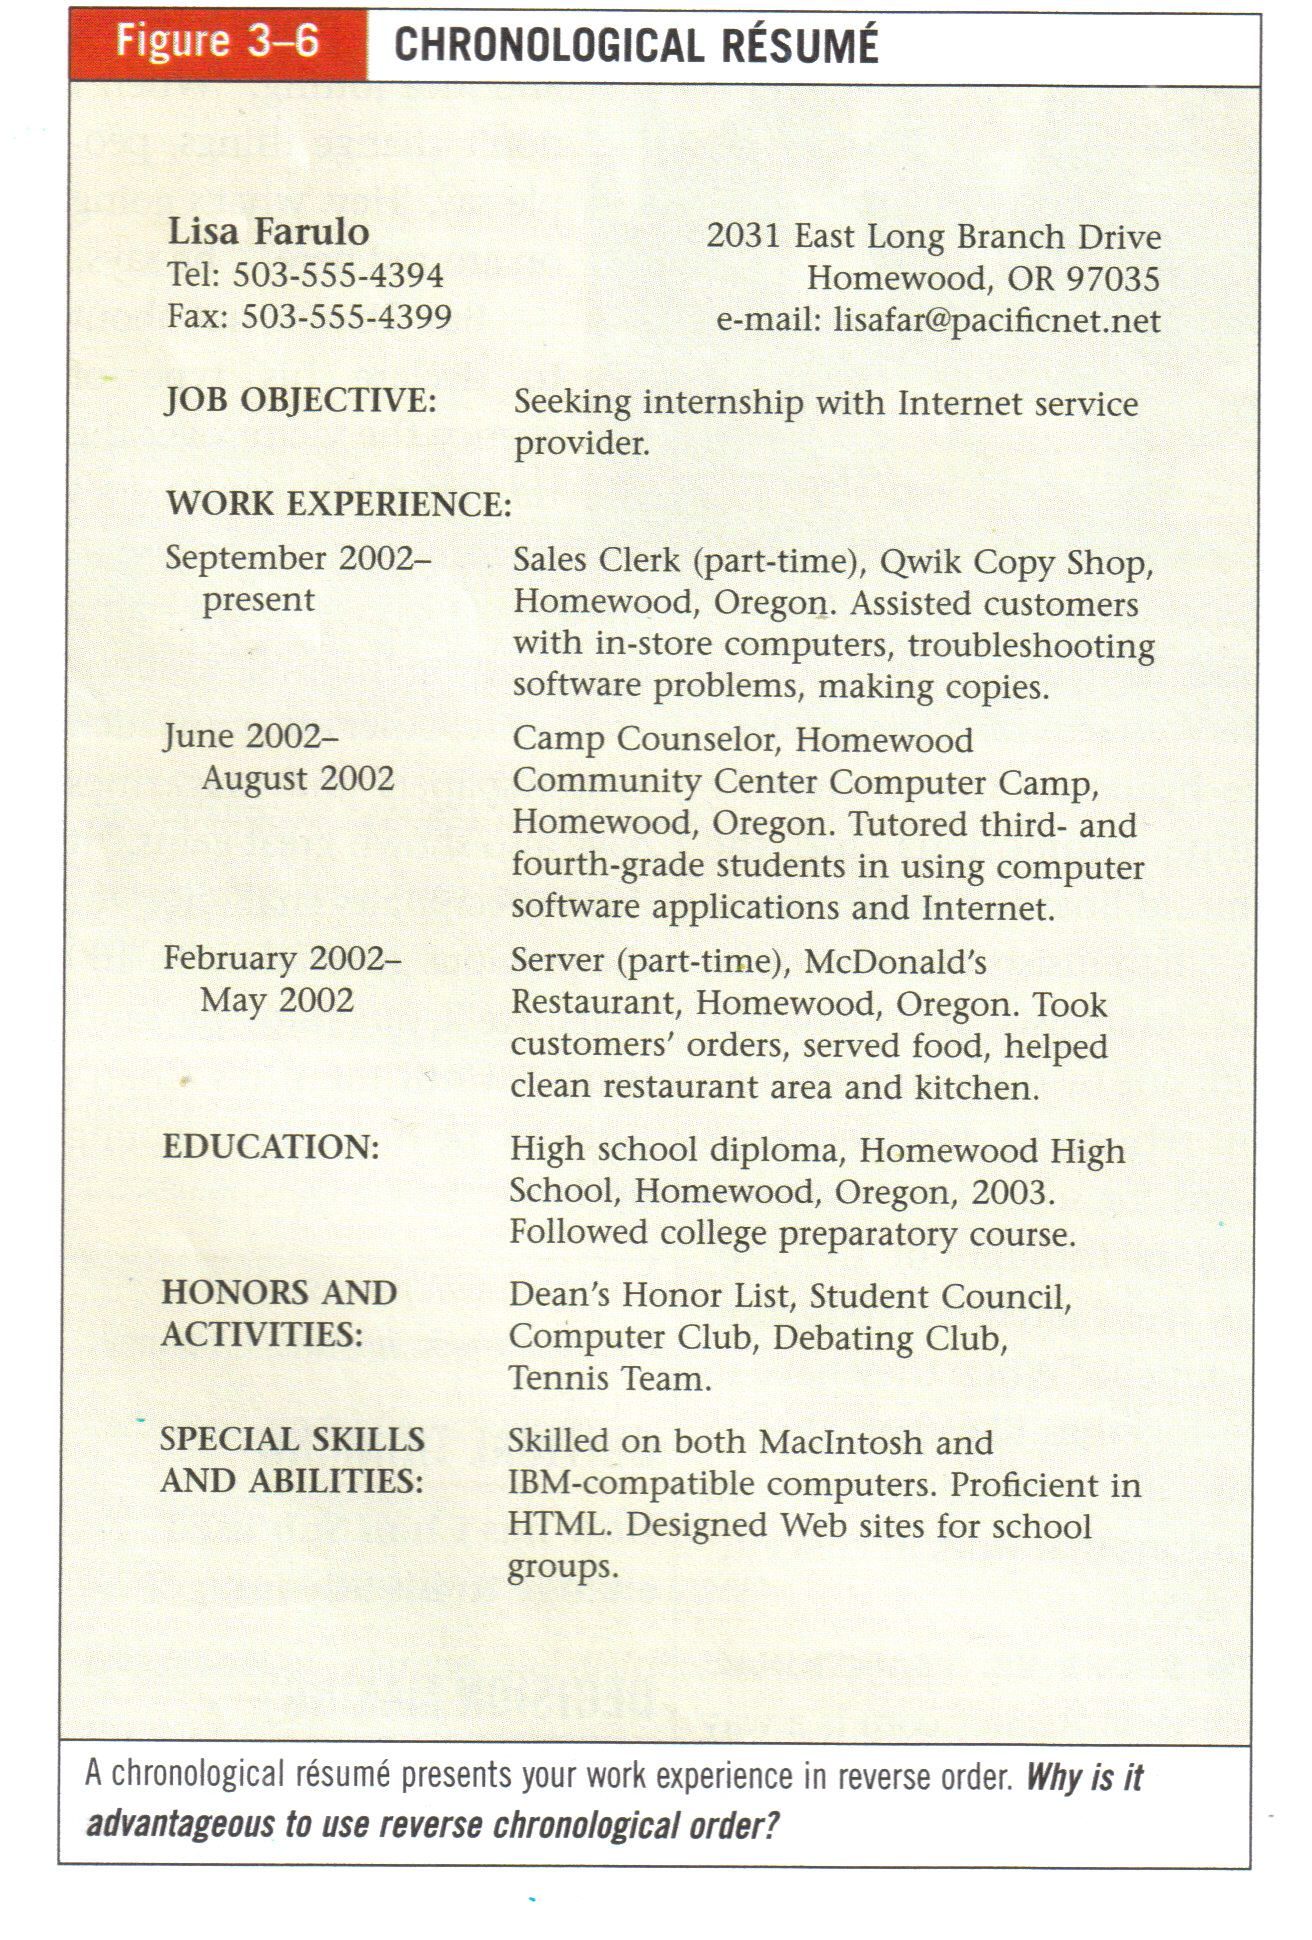 sample chronological resume career development teaching ideas